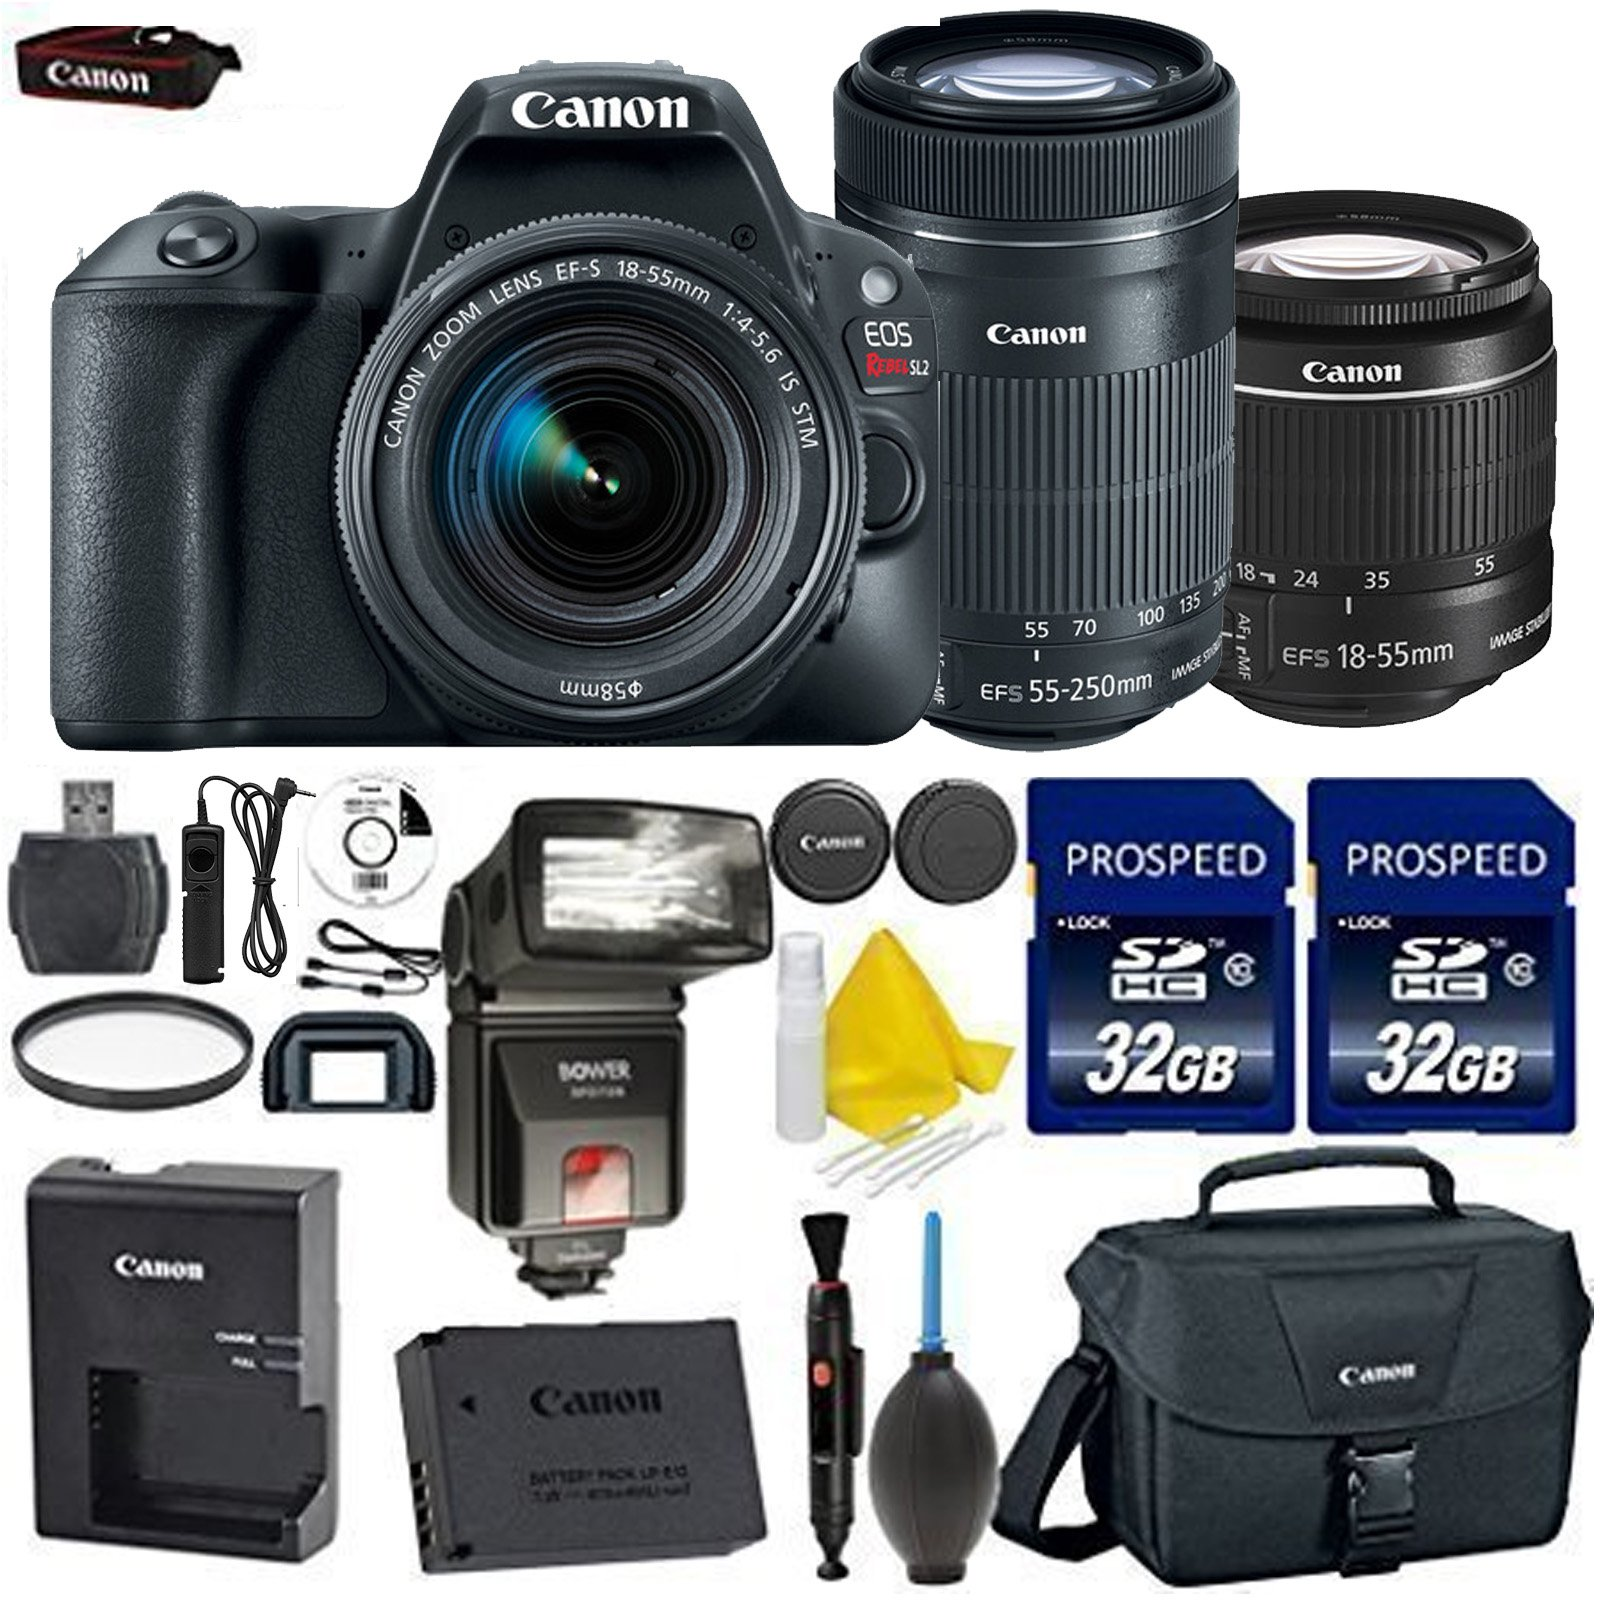 Canon EOS Rebel SL2 DSLR Camera with Canon EF-S 18-55mm f/4-5.6 IS STM Lens + Canon EF-S 55-250mm f/4-5.6 IS STM Lens + 2 Pcs Prospeed 32GB Memory Card + Premium Accessories Bundle (16 Items) by Canon